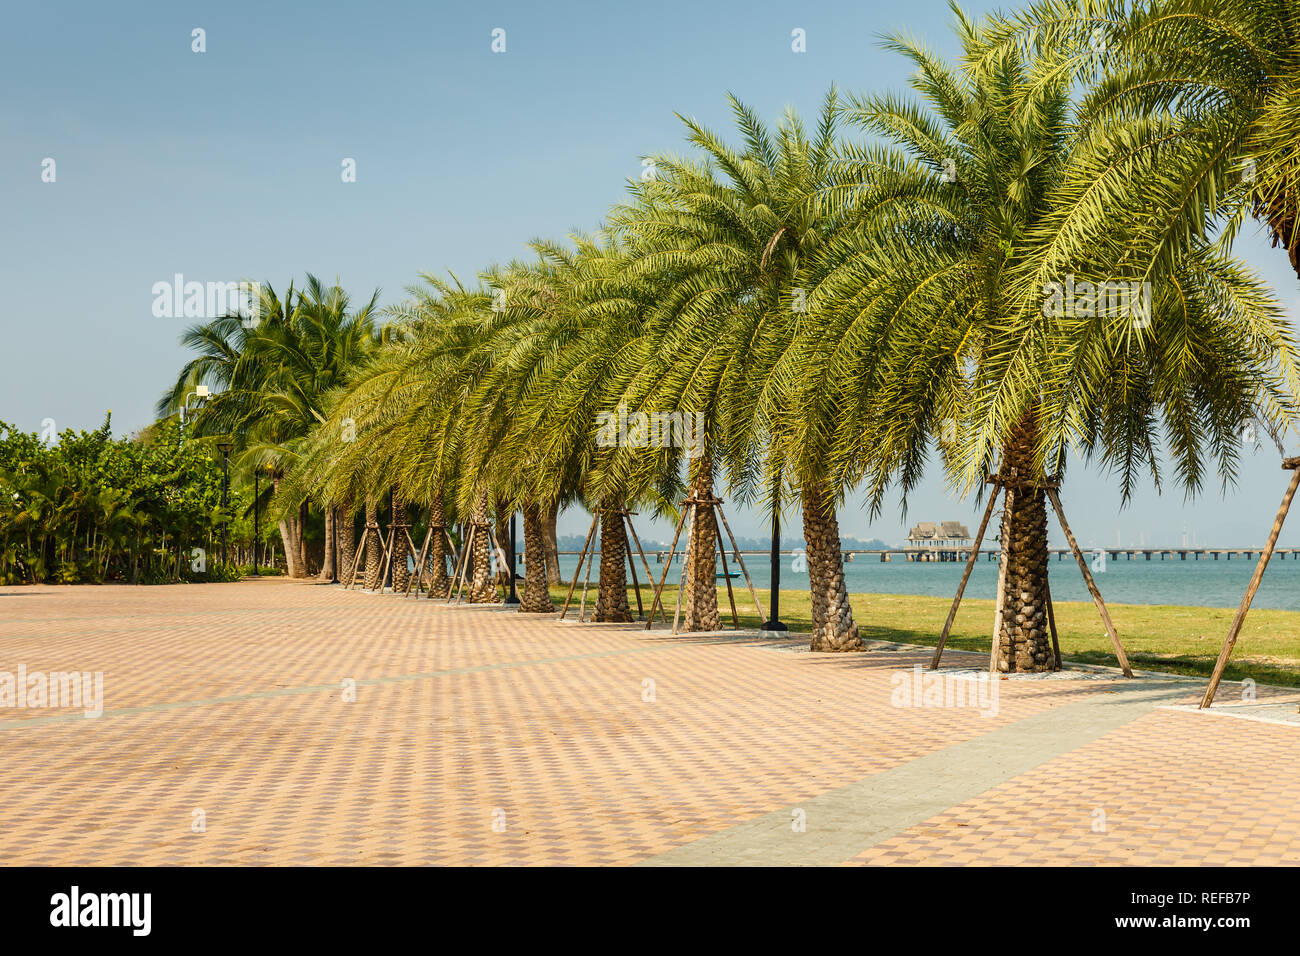 palm alley on the coast of the Gulf of Siam, beautiful landscape Thailand Stock Photo